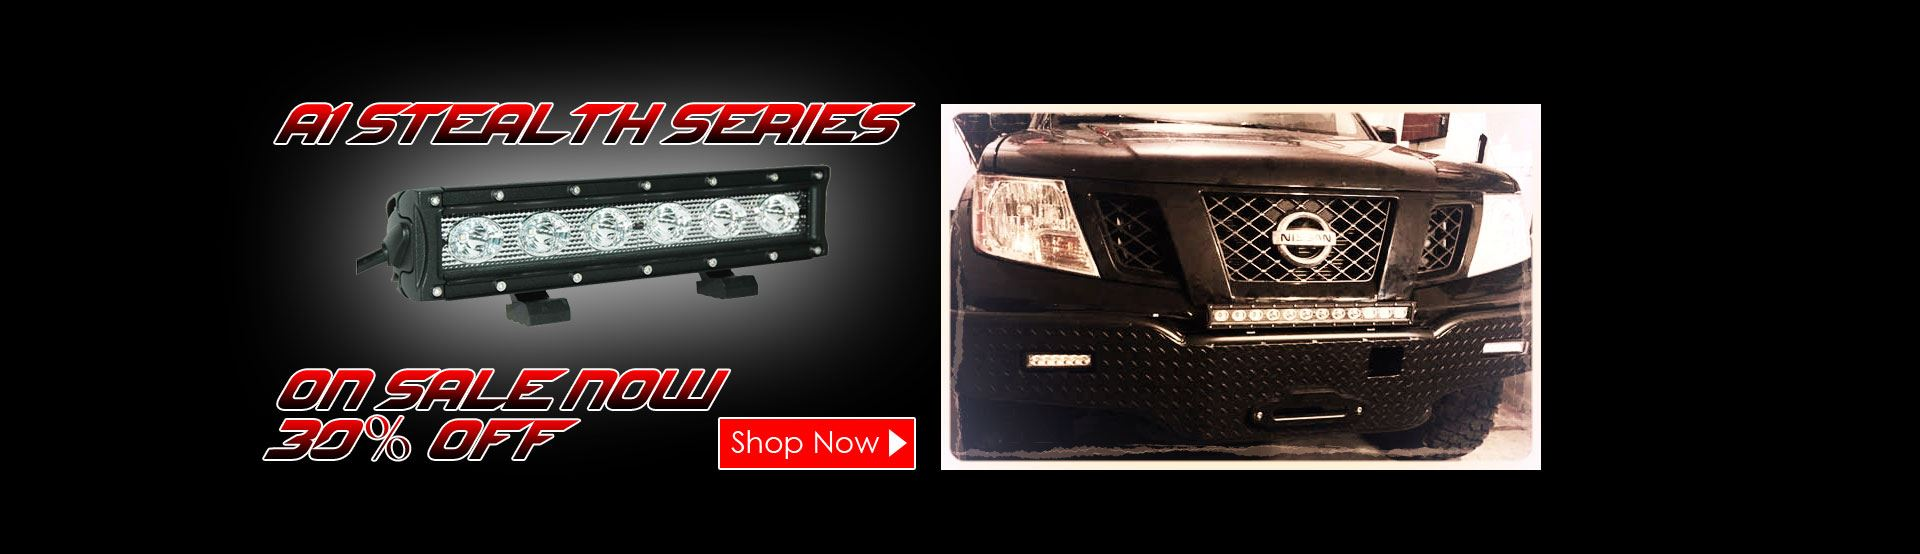 A1 Stealth Series LED Light Bars On Sale Now